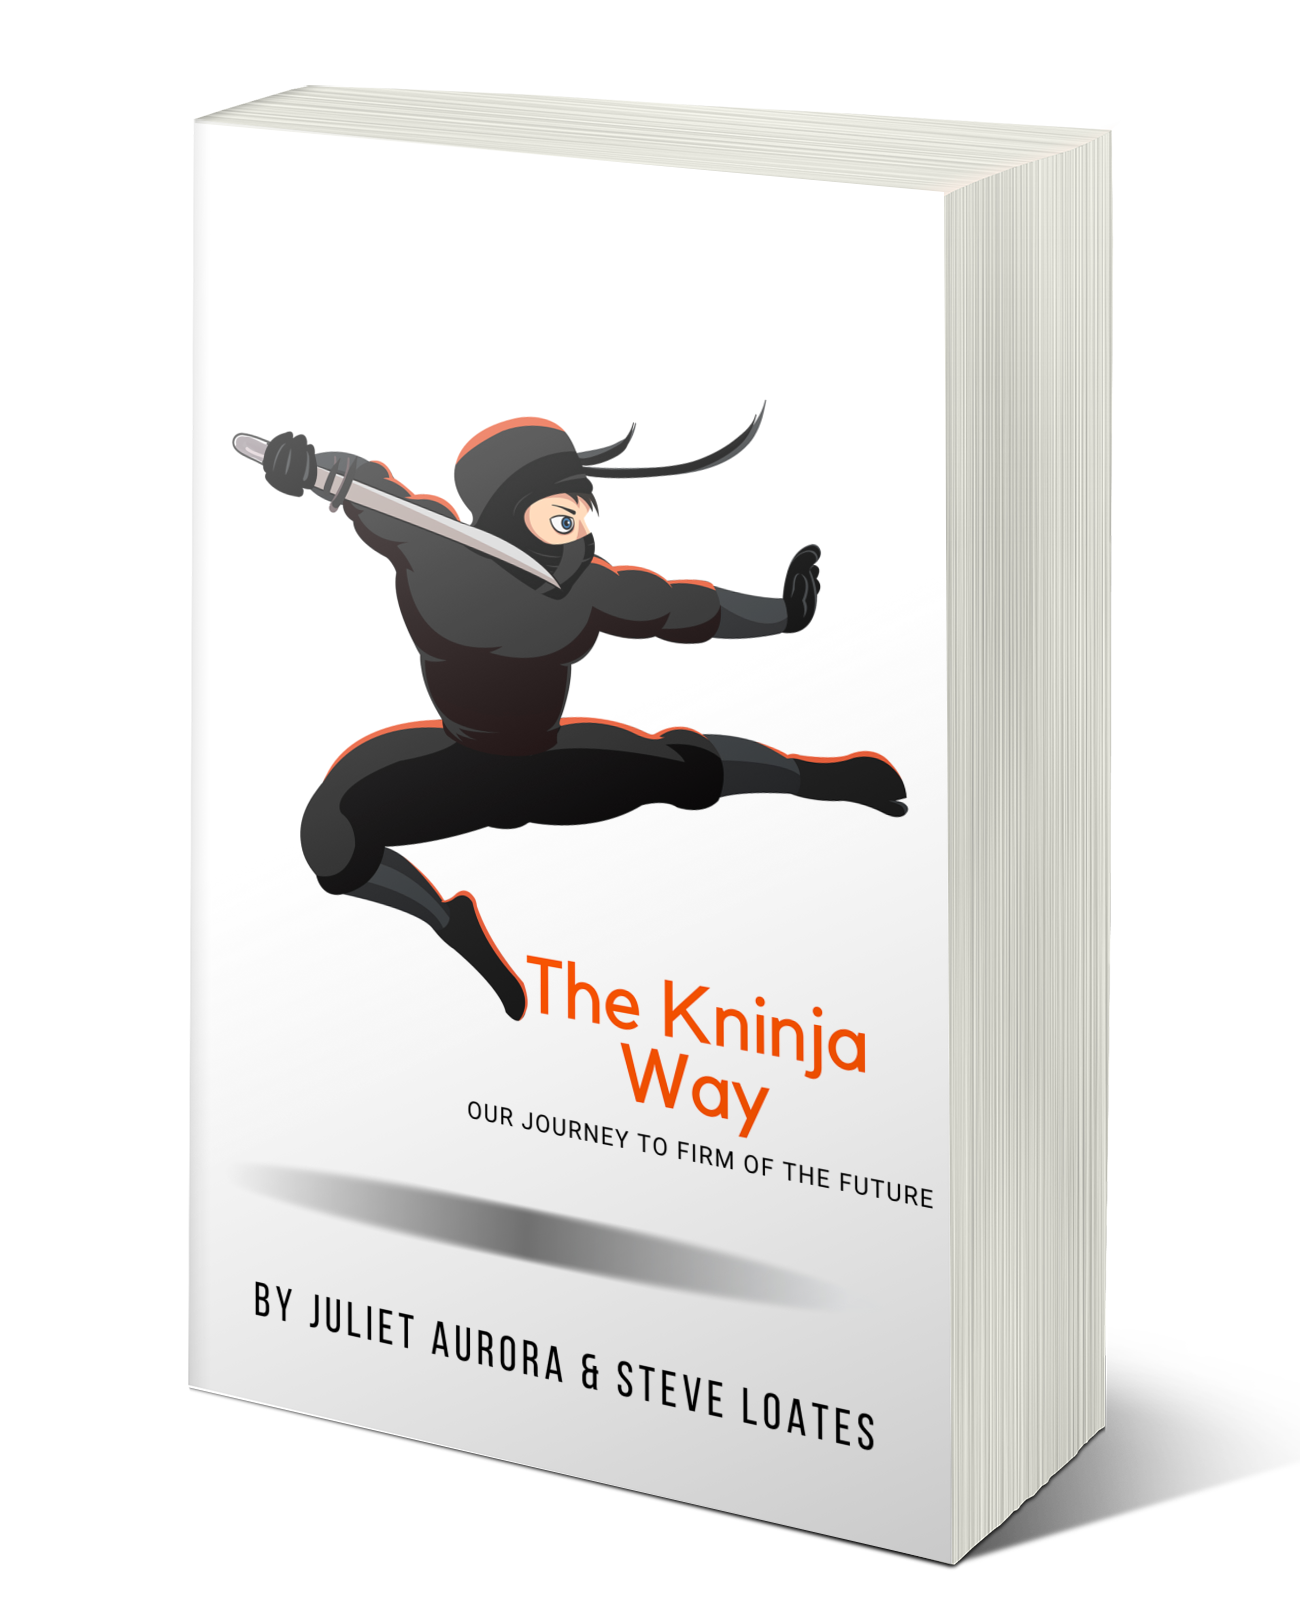 The Kninja Way Book Cover